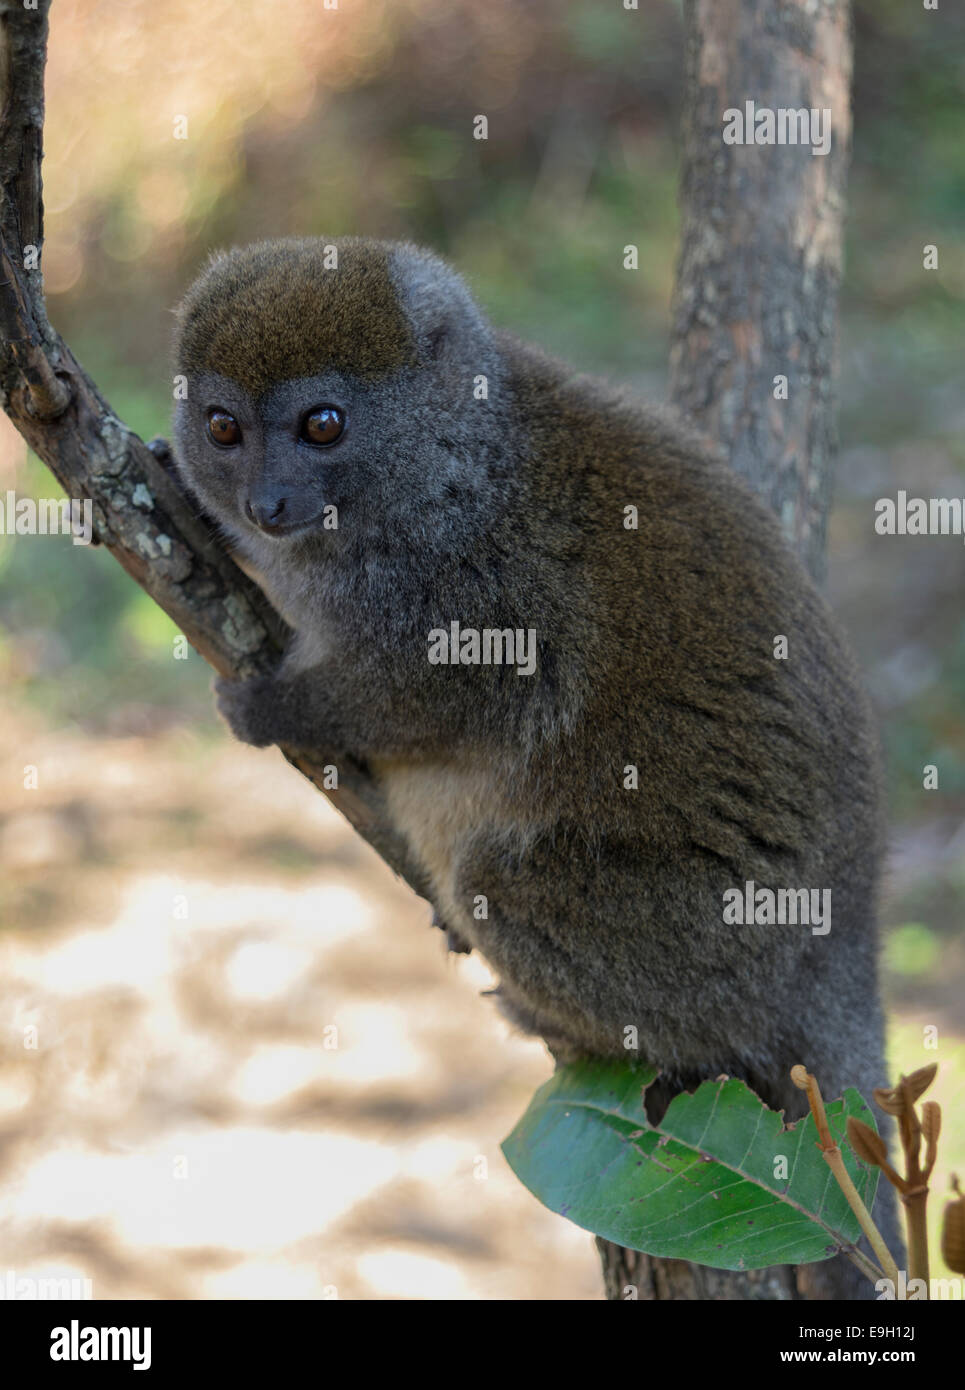 The bamboo or gentle lemur in Magagascar - Stock Image